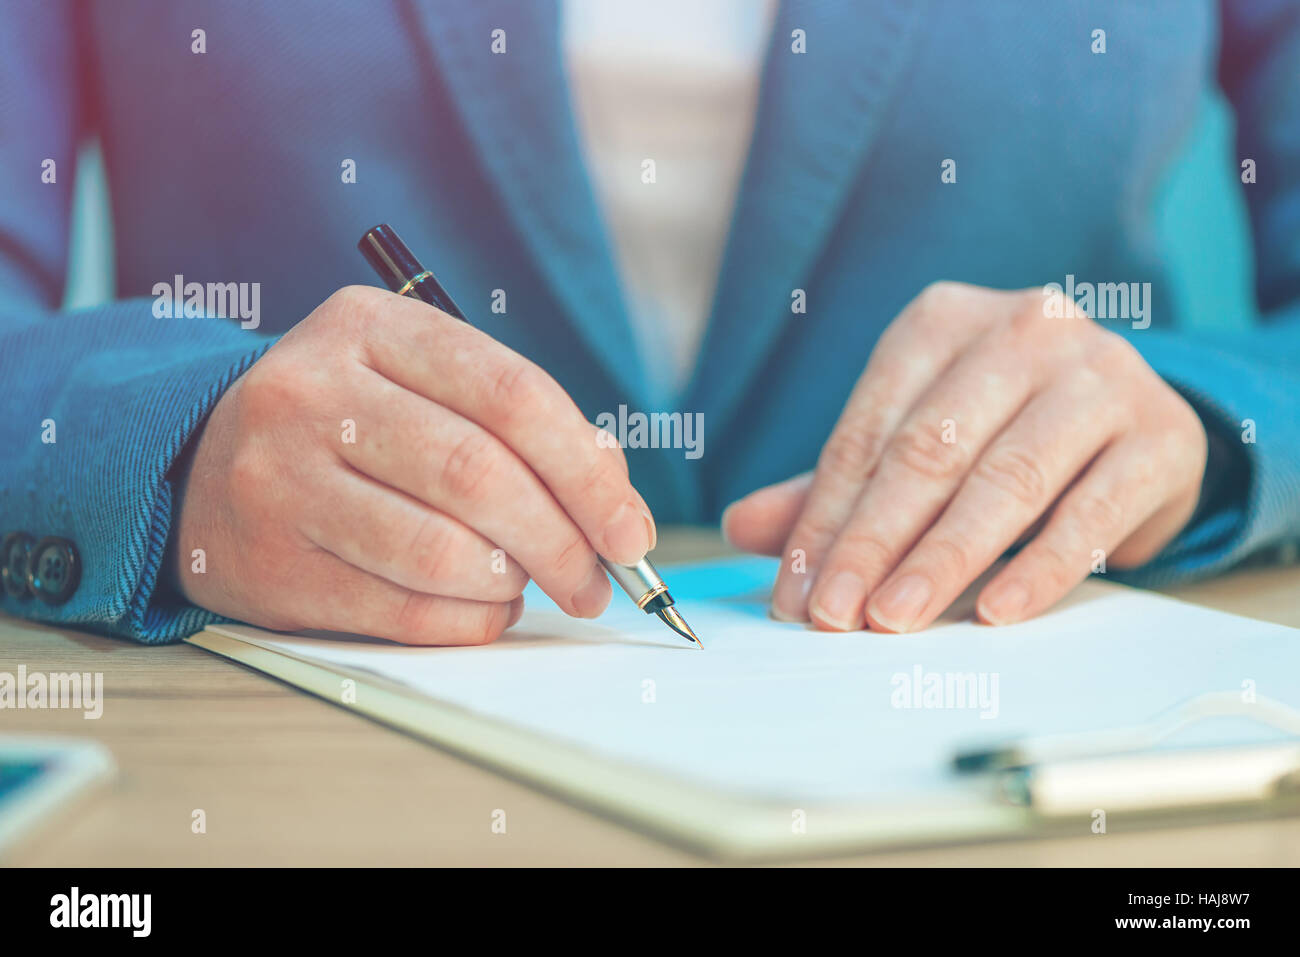 Close up of female hands writing signature on business agreement contract in the office - Stock Image